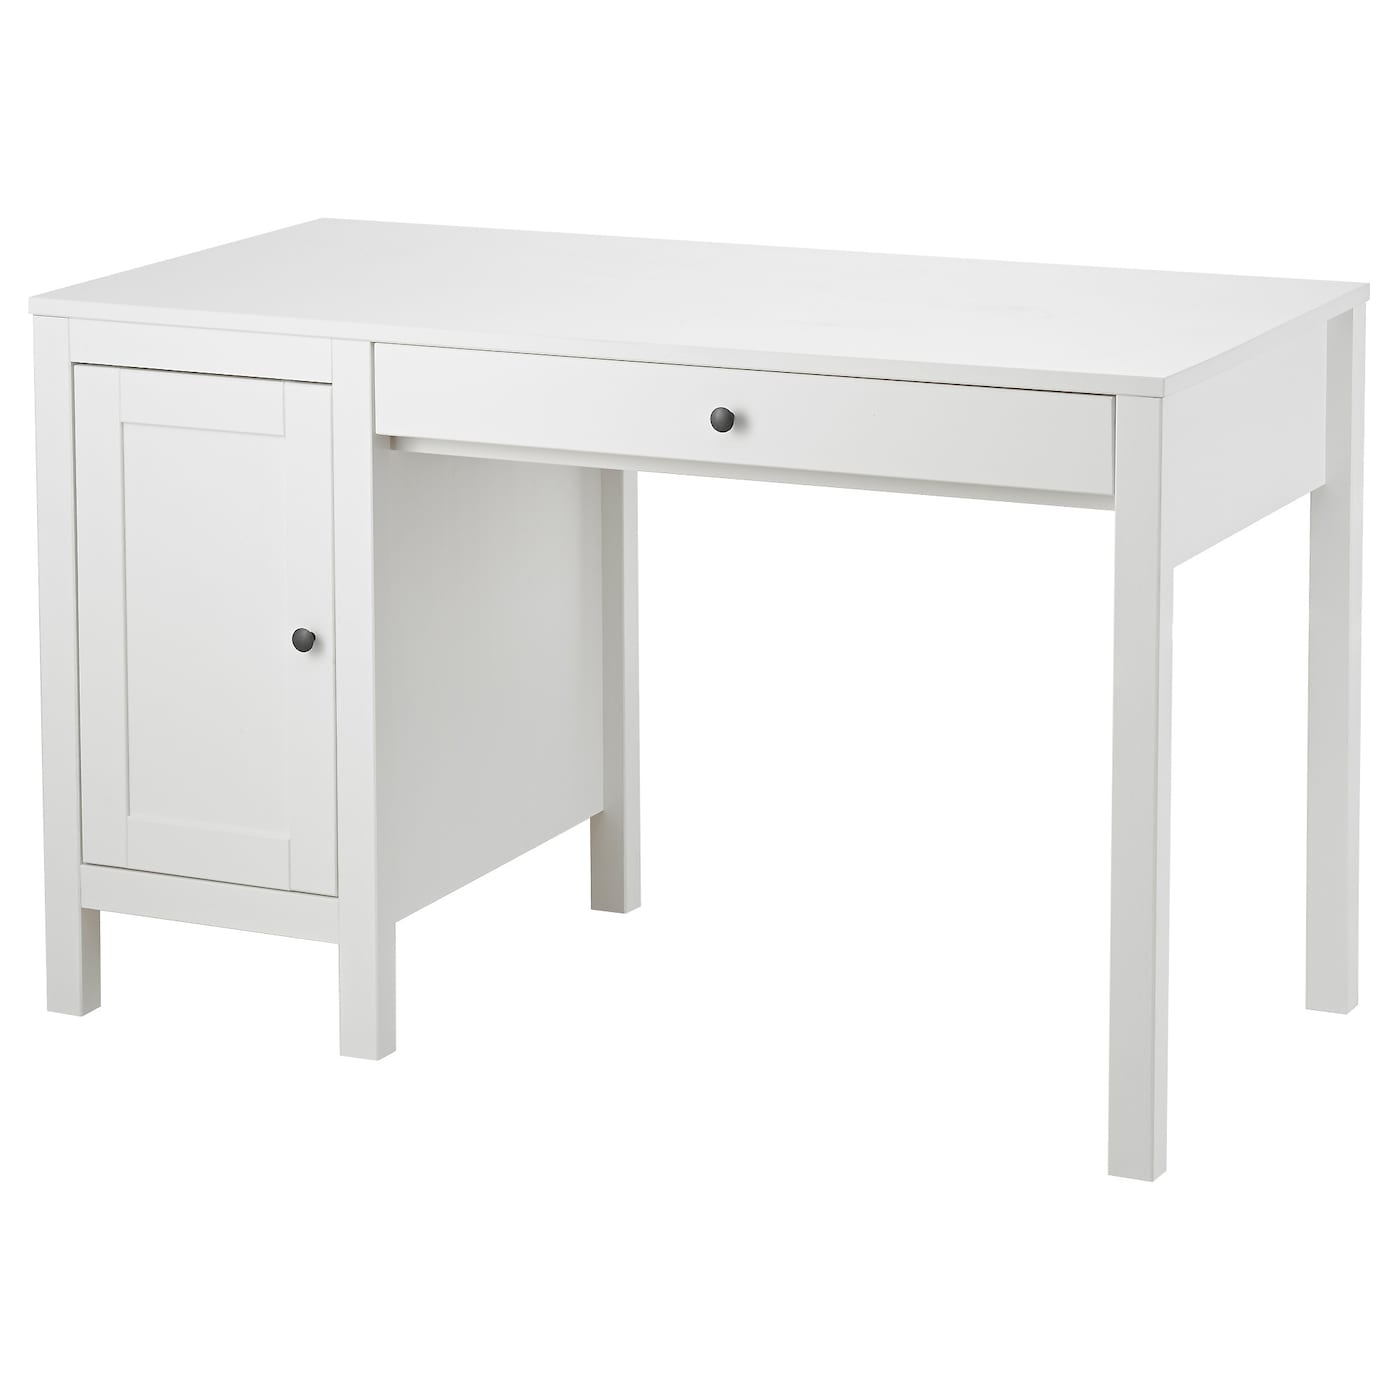 computer tables desks for mobile solutions ikea. Black Bedroom Furniture Sets. Home Design Ideas